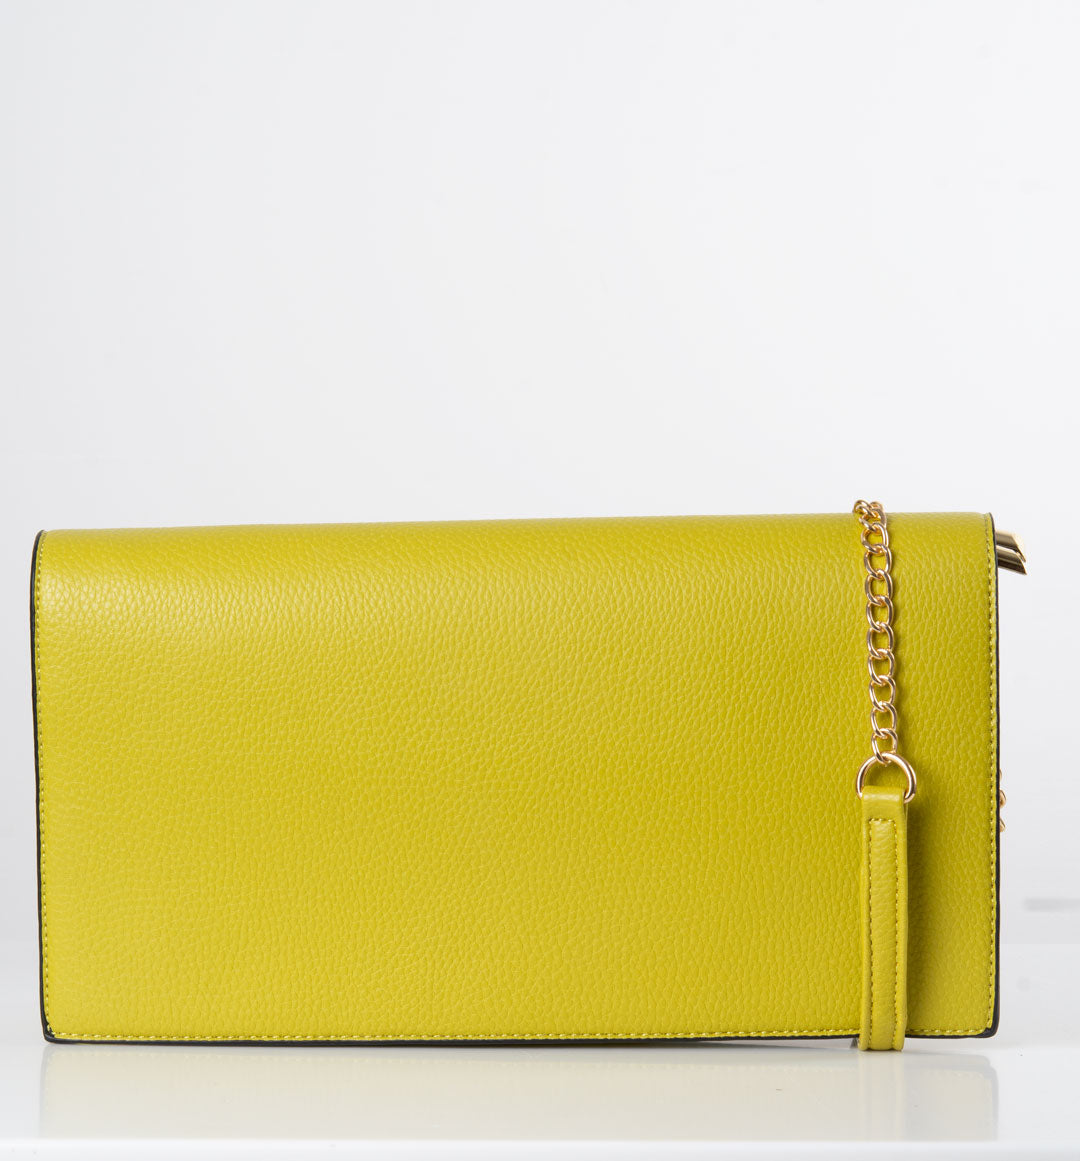 an image showing a lime green shoulder bag